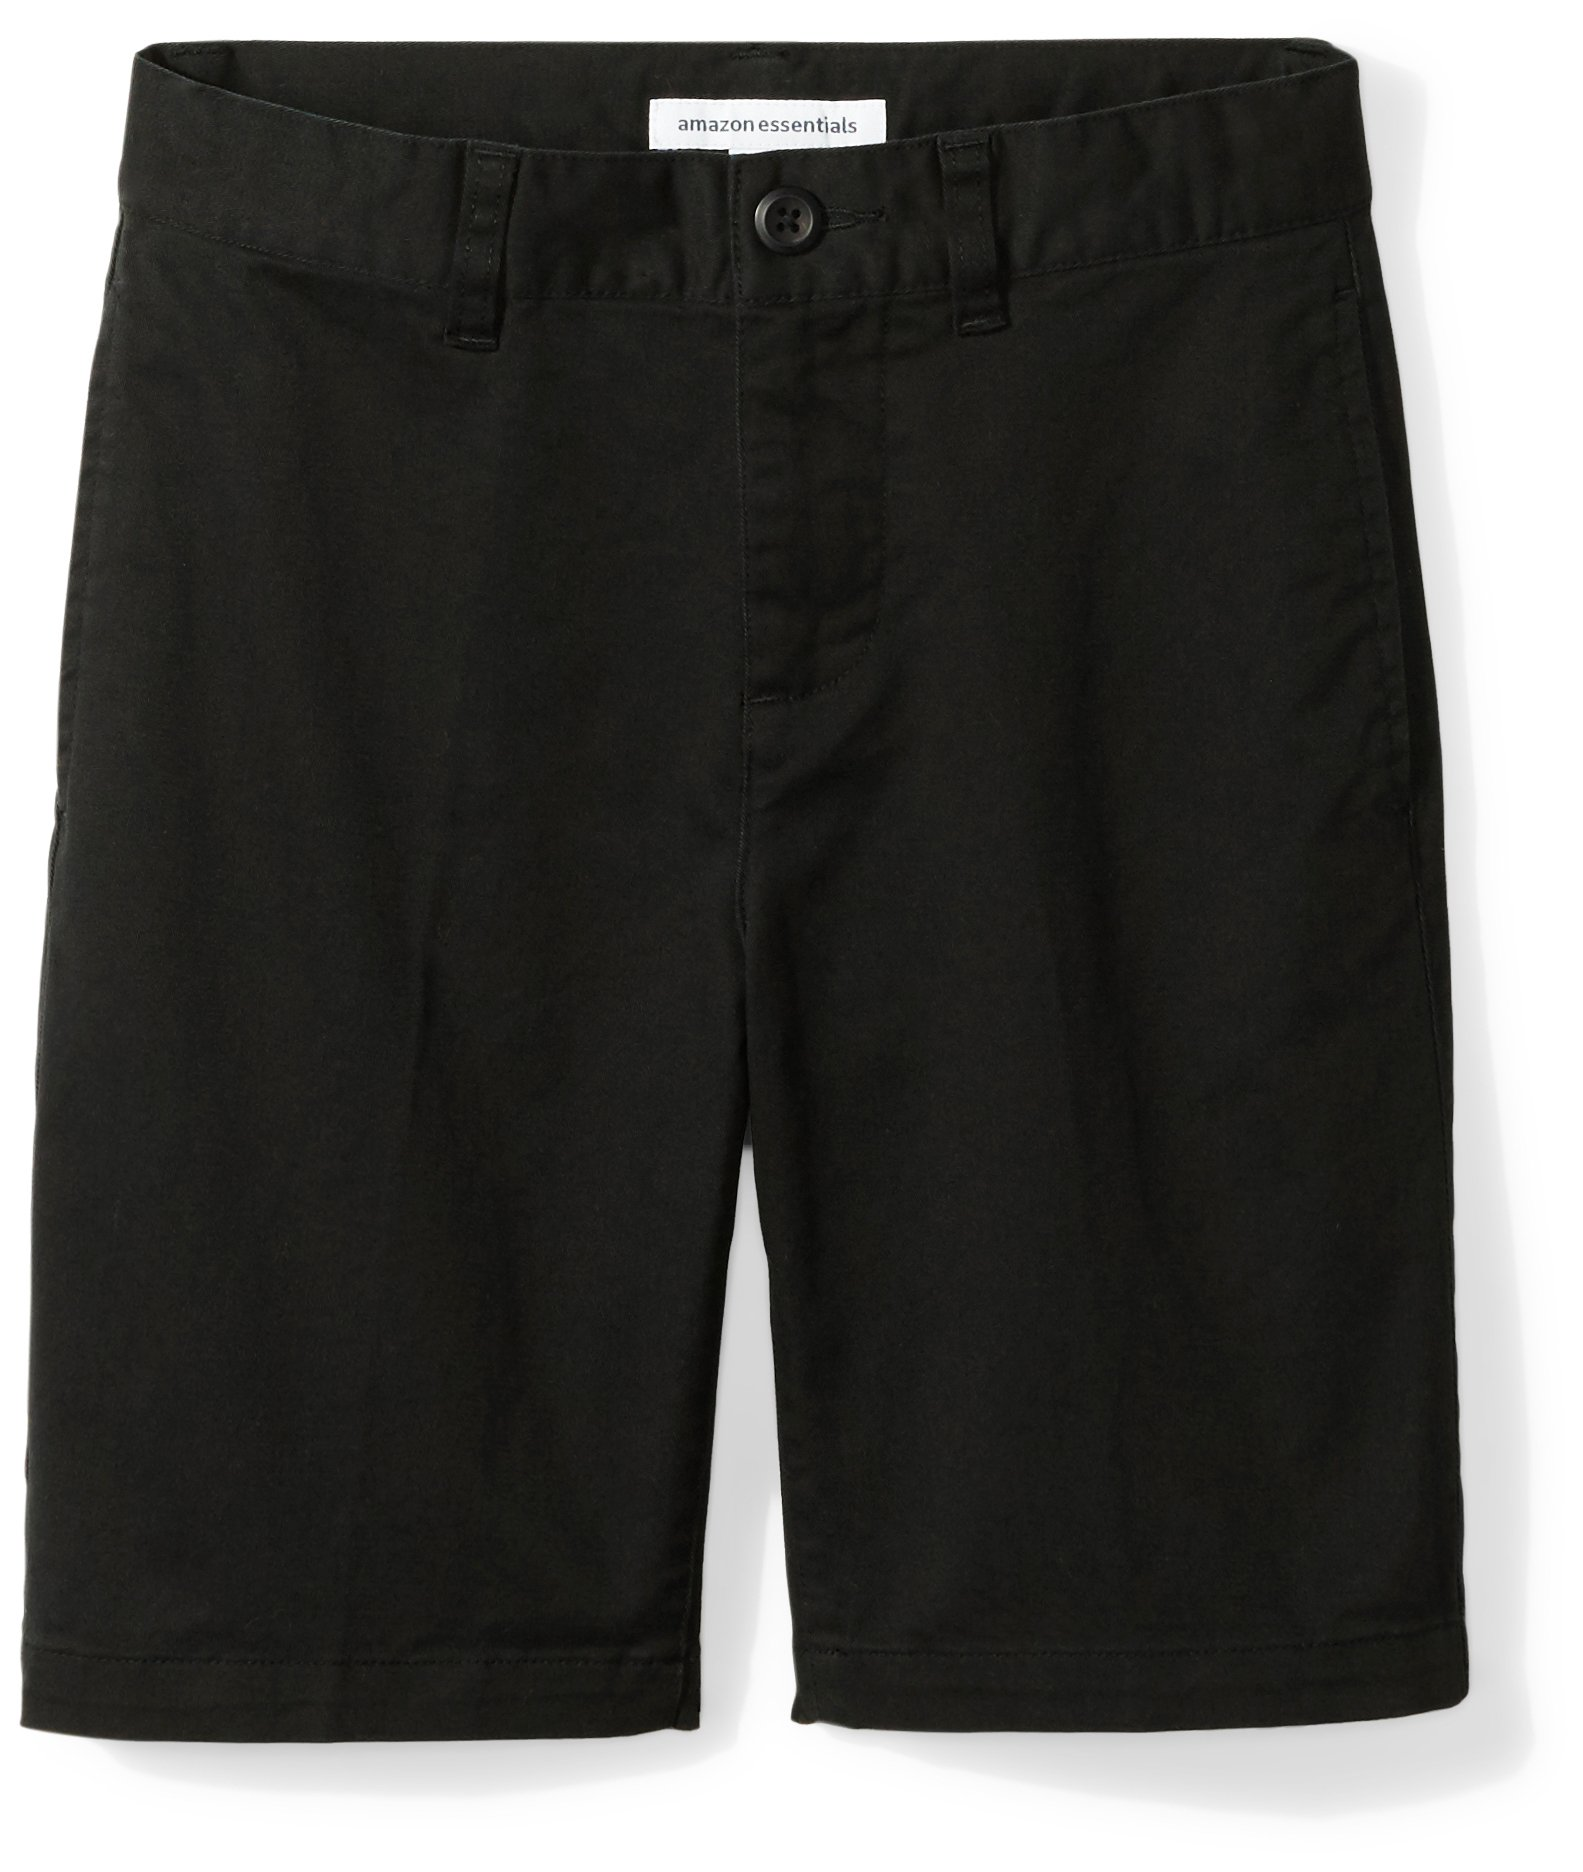 Amazon Essentials Boys' Flat Front Uniform Chino Short, Black,12